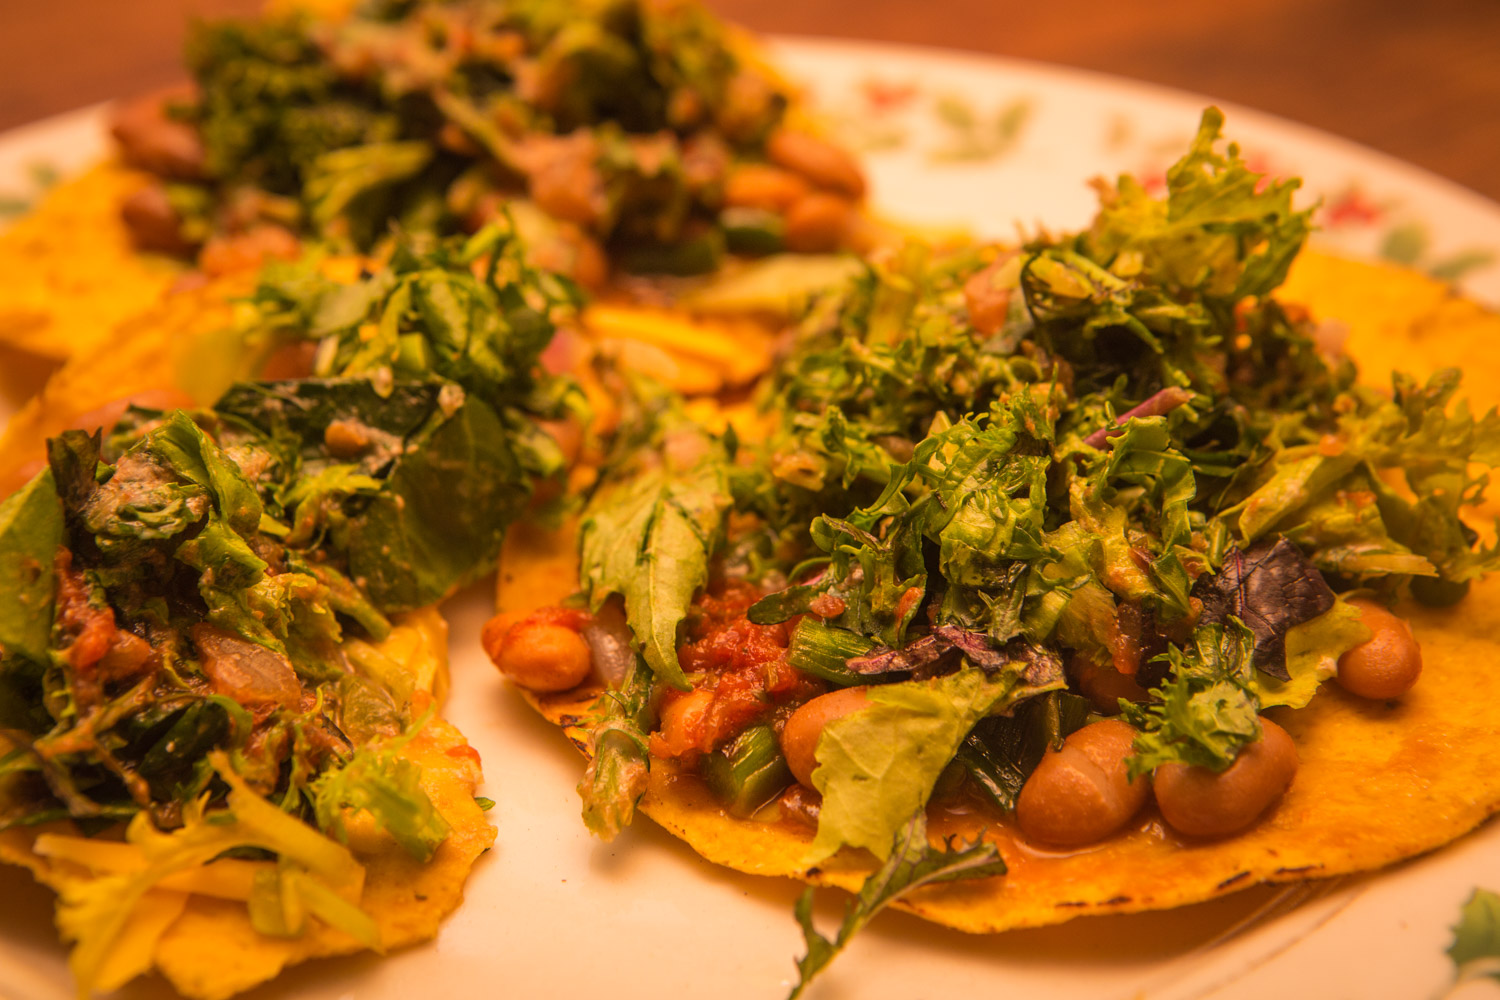 This made a fast, easy, fresh from the field dinner for us on Monday this week. Minimal cooking, less than 20 minutes from idea to table, and uses several of this week's subscription box ingredients. We used flat crispy corn tortillas, but you could also use taco shells, or roll it into soft tortillas for burrito-style. This recipe served two farmers.